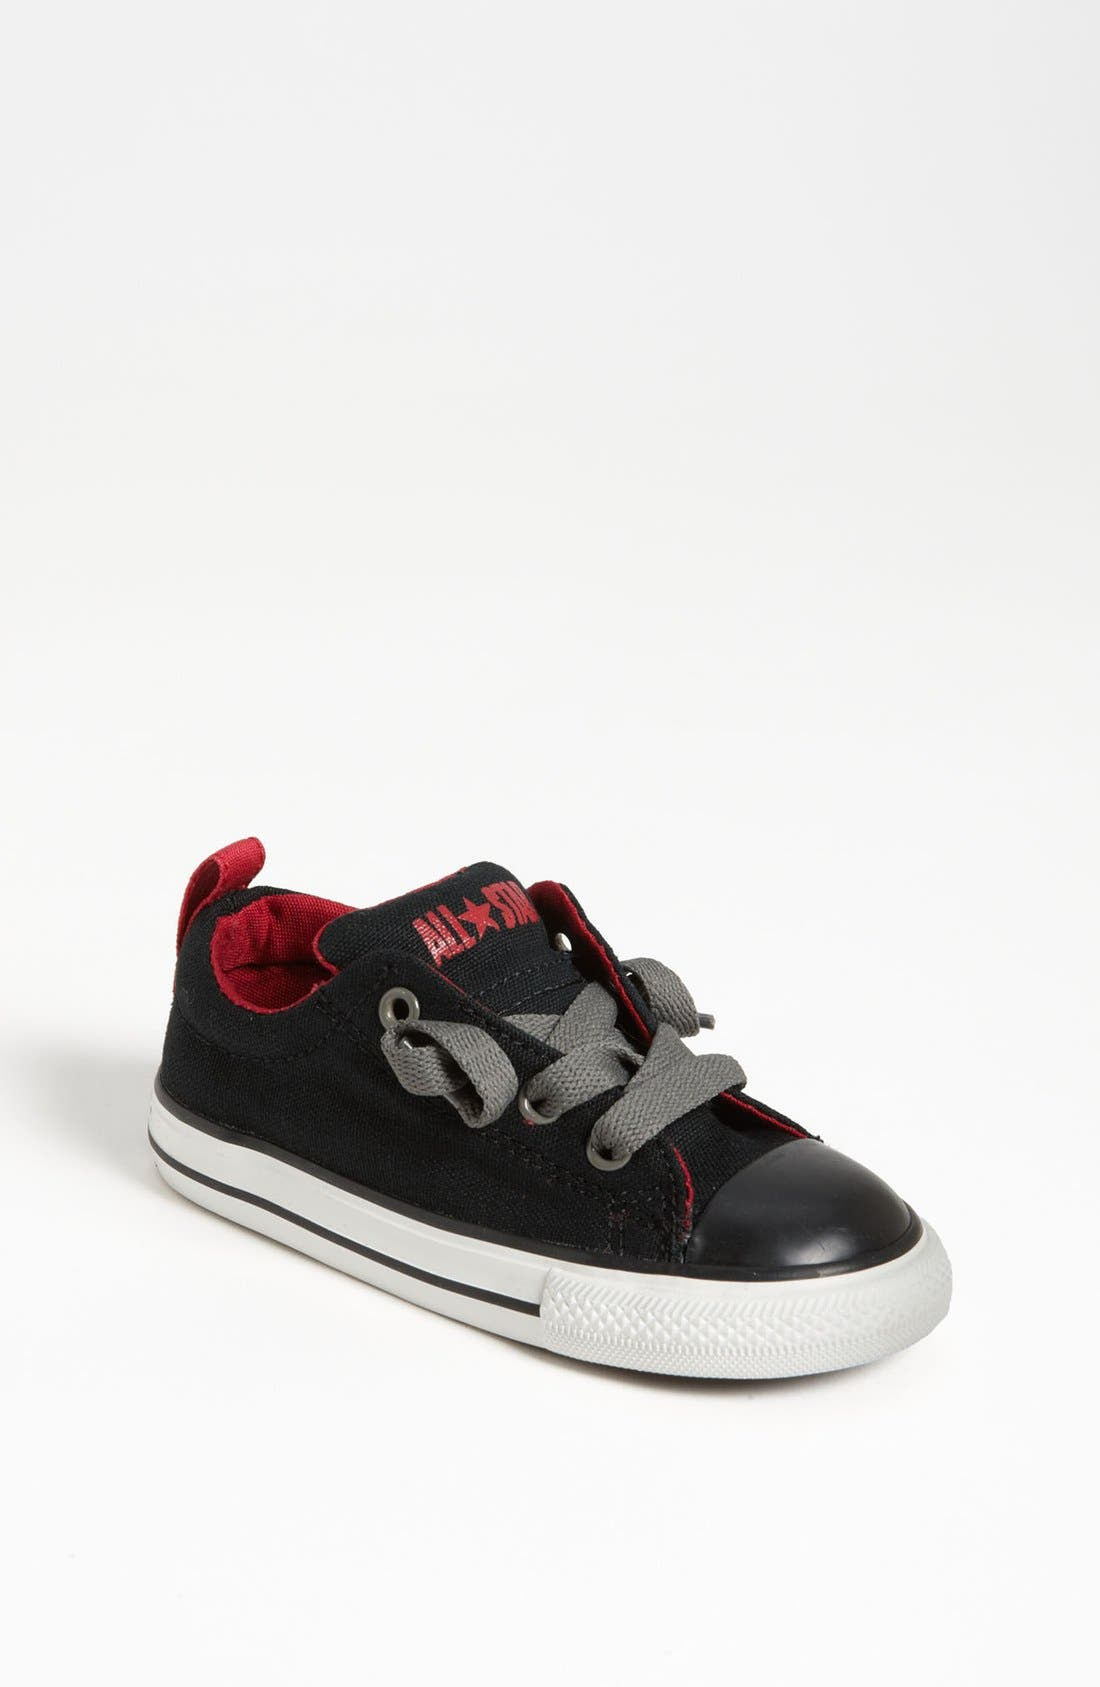 Alternate Image 1 Selected - Converse 'Street Ox' Slip-On Sneaker (Baby, Walker & Toddler)